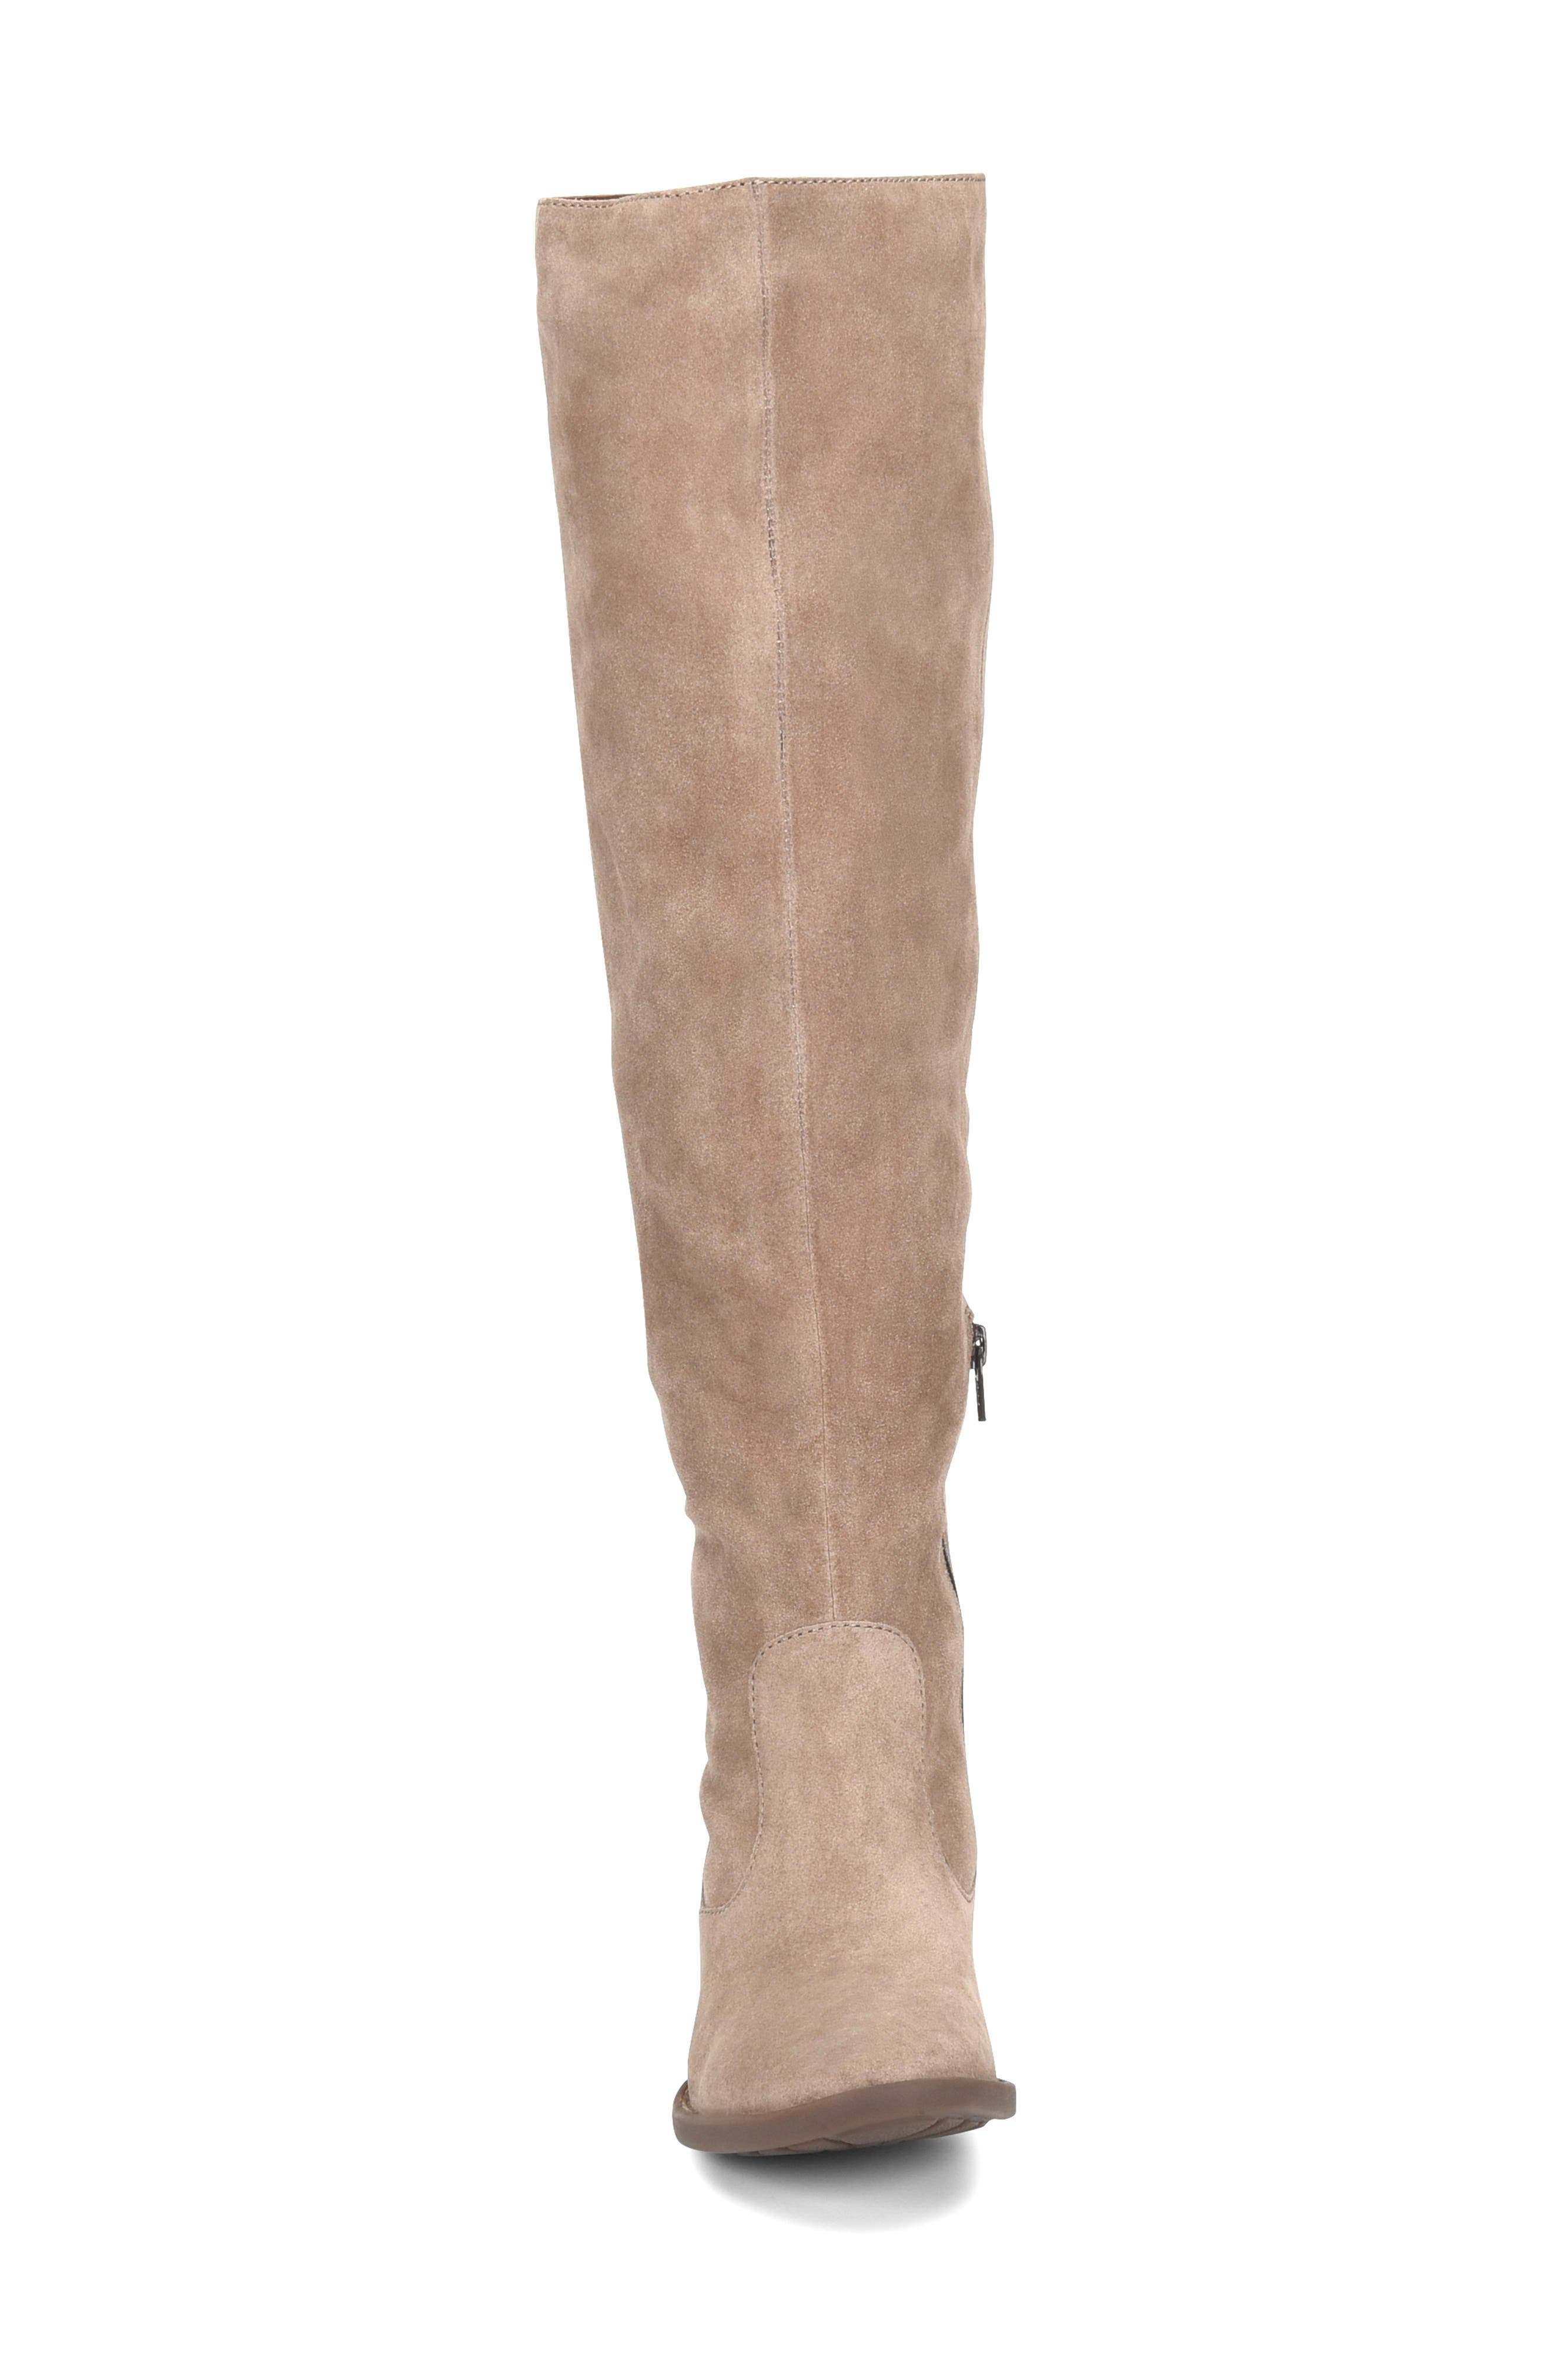 Cricket Over the Knee Boot,                             Alternate thumbnail 4, color,                             TAUPE SUEDE